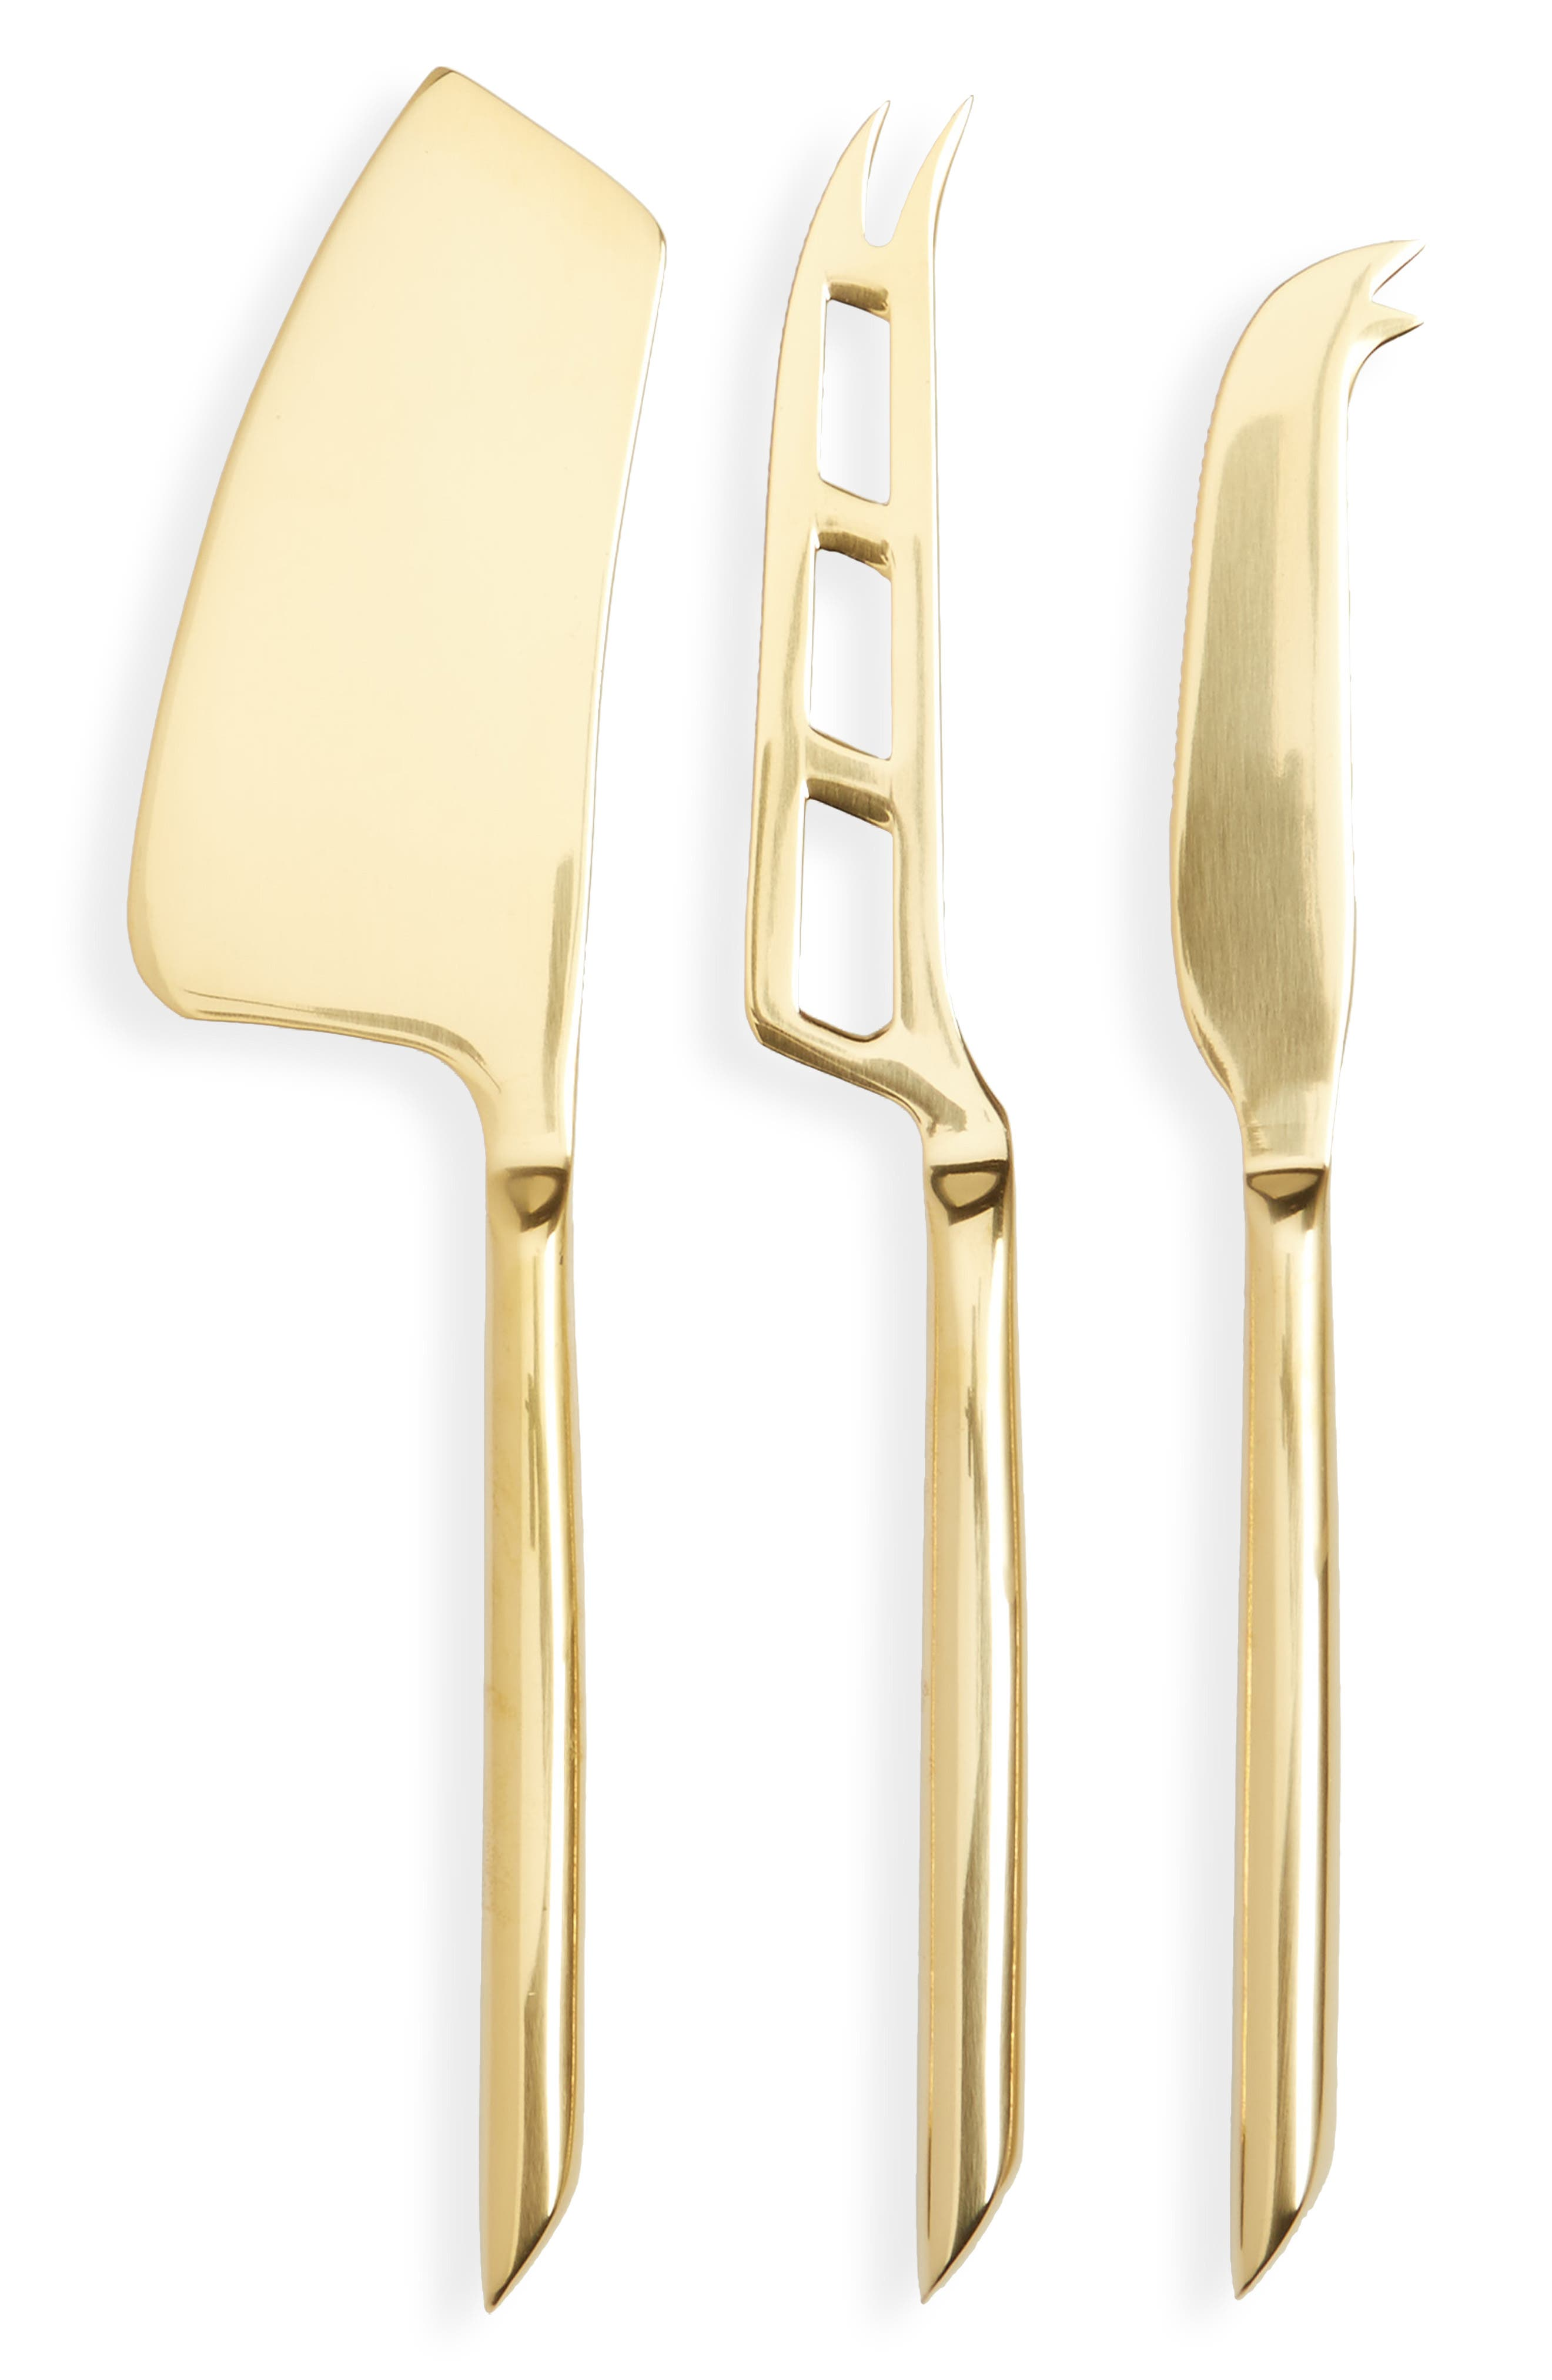 Alternate Image 1 Selected - Viski by True Fabrications Belmont Set of 3 Cheese Knives